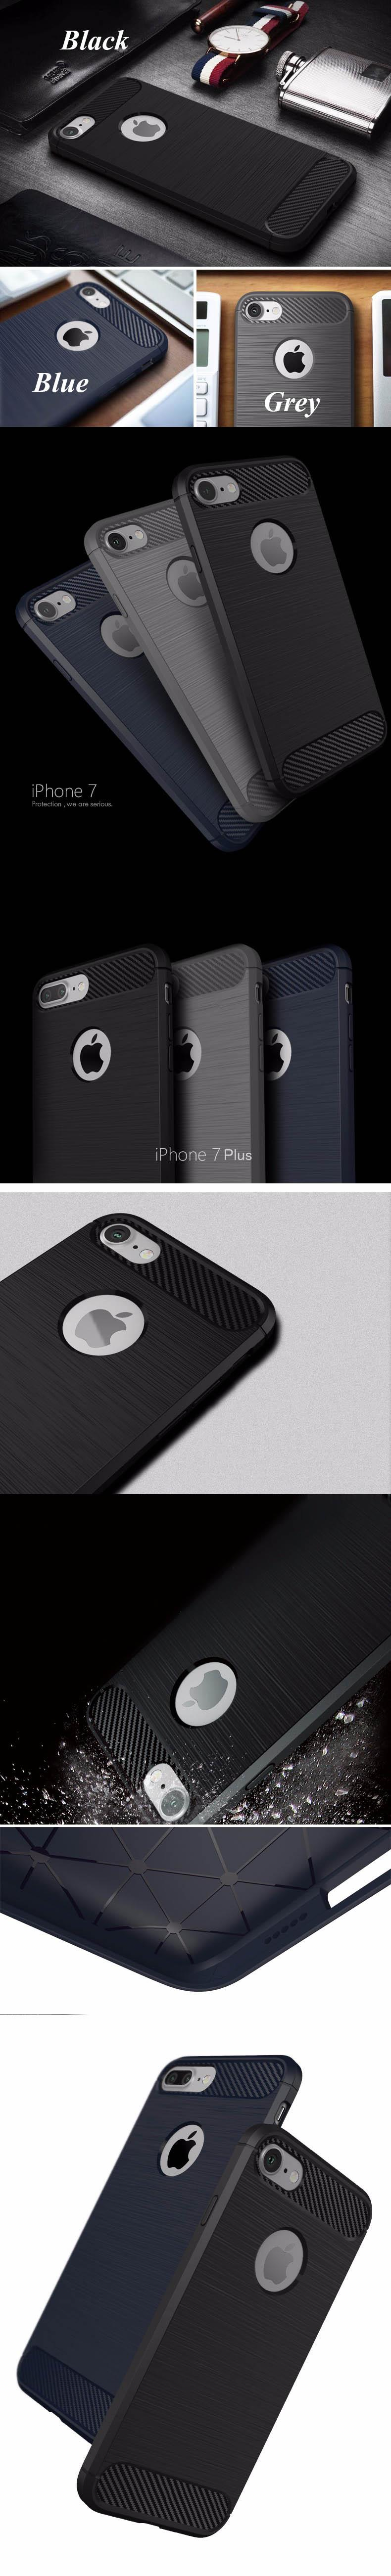 iPhone 7 / 7 Plus Luxury Silicone Back Case